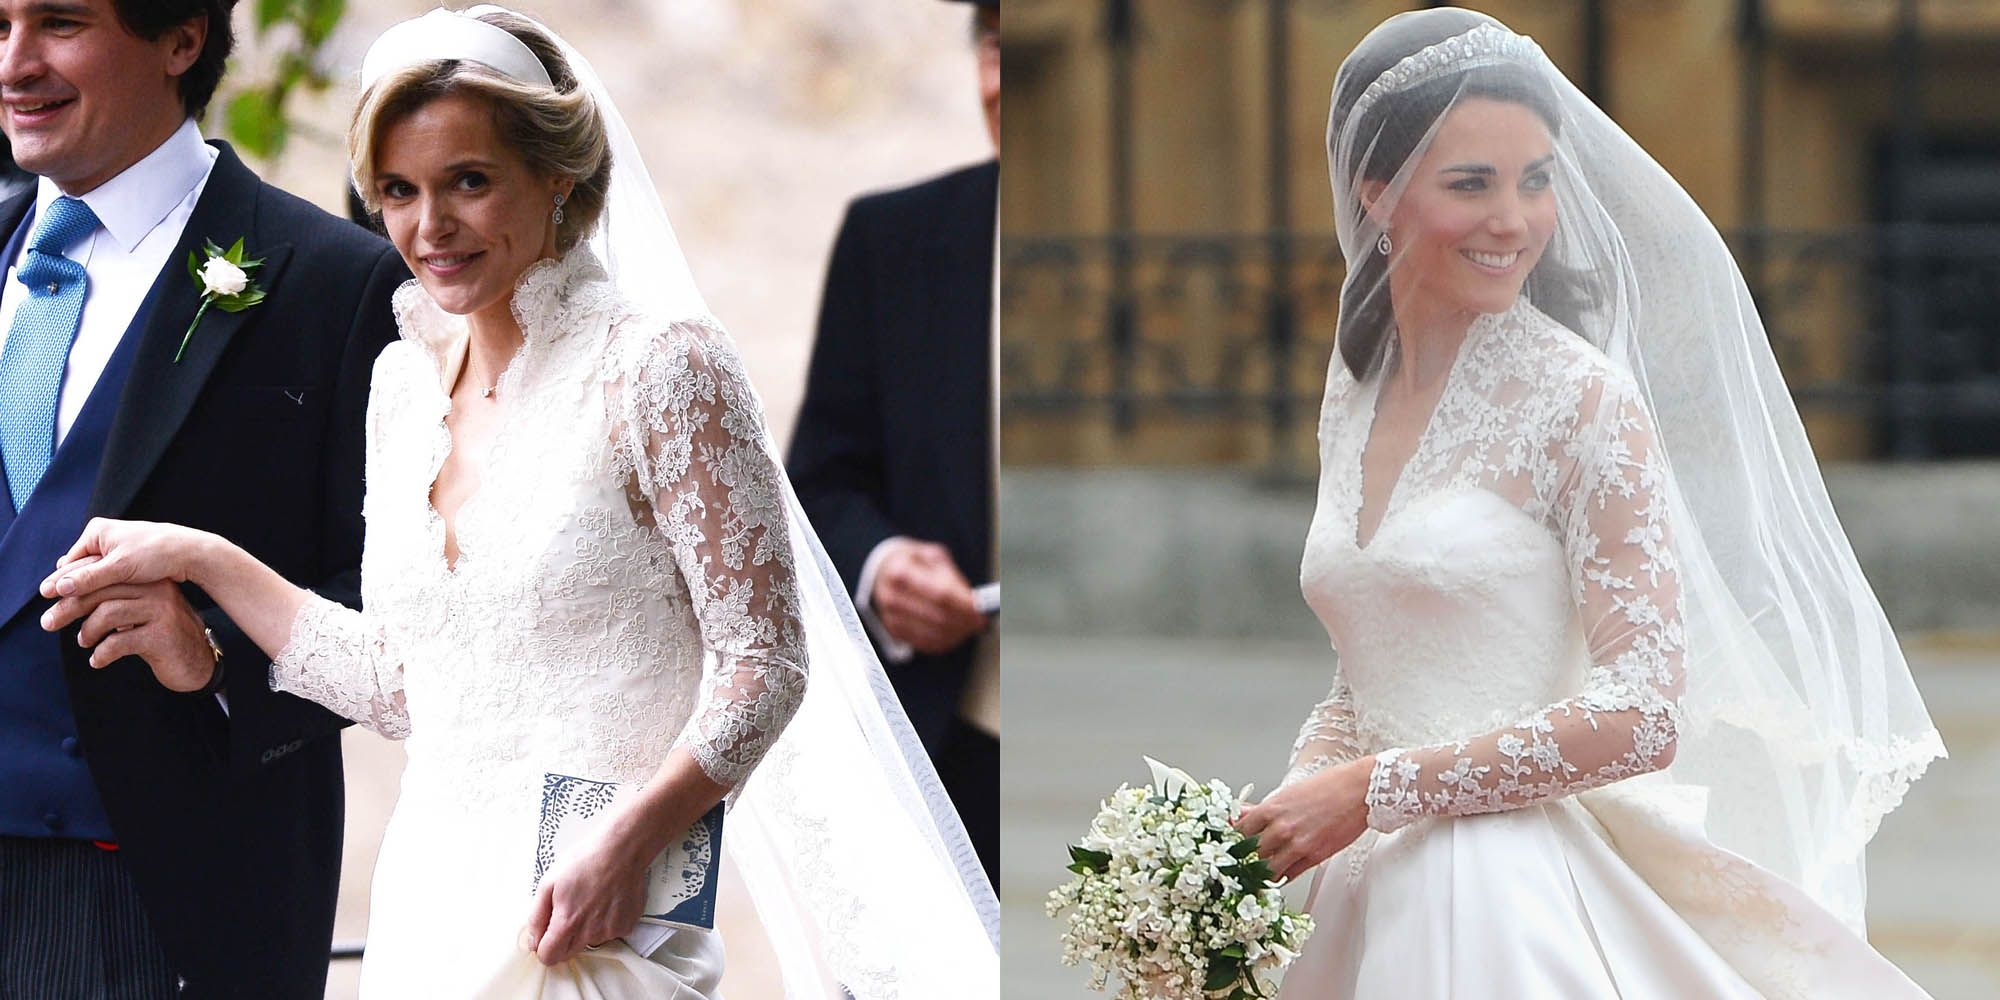 kate middleton s friend sophie carter wore a wedding dress that looked a lot like hers kate middleton s friend sophie carter